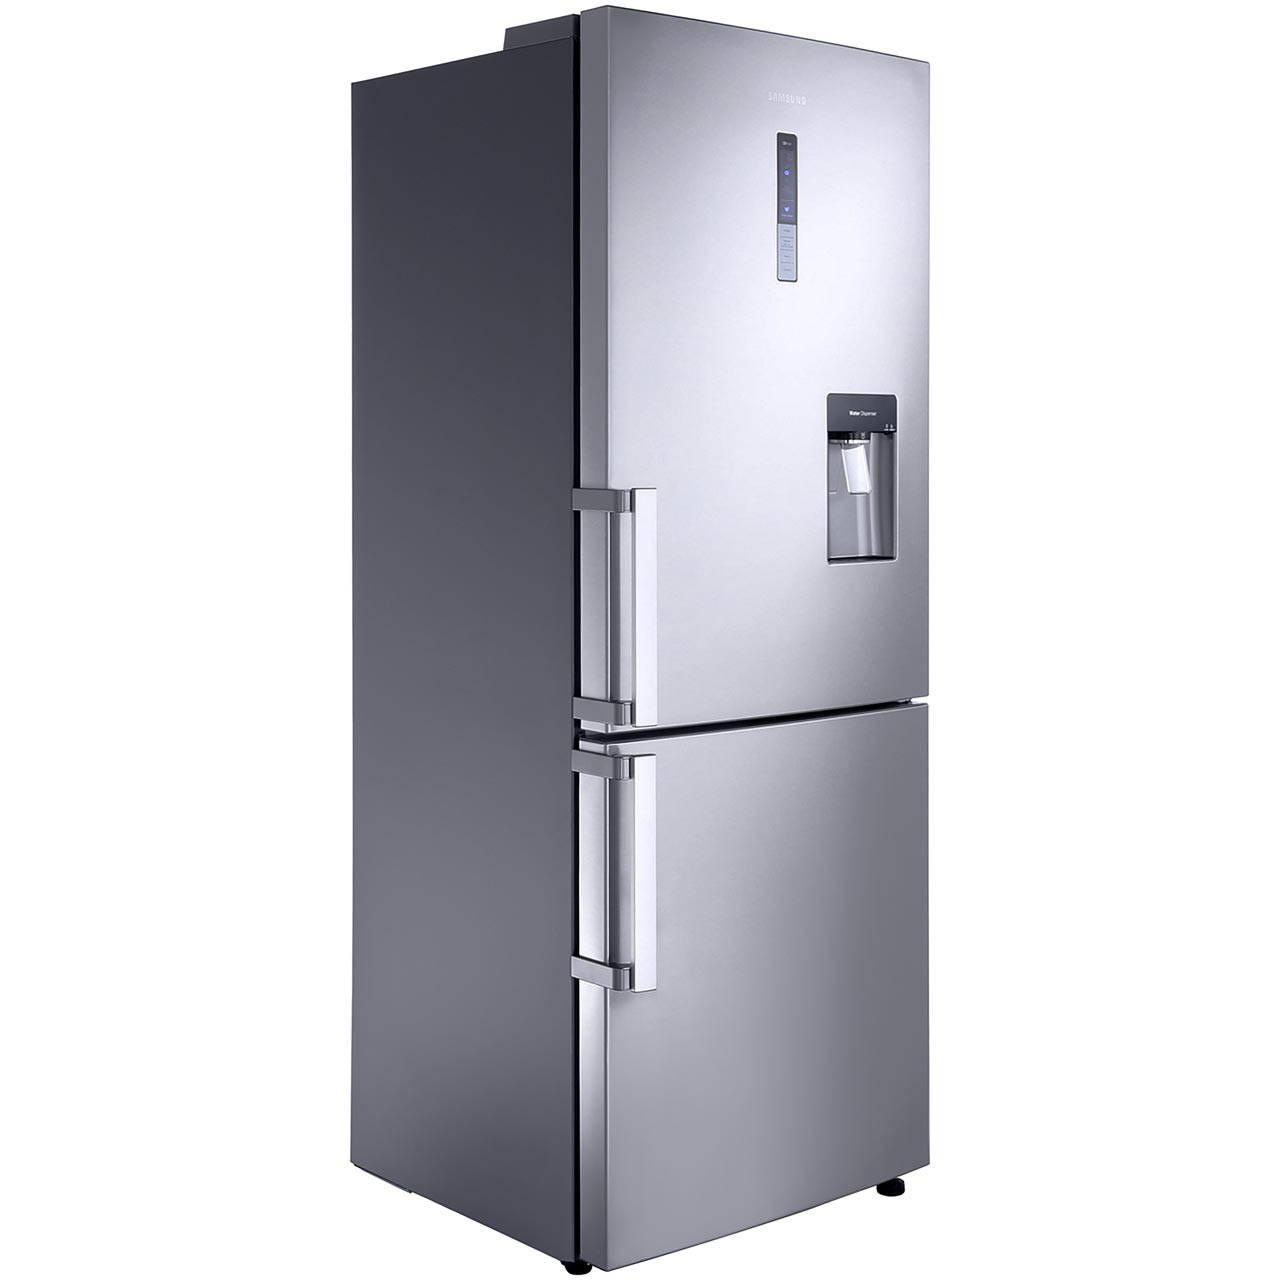 Samsung GSeries RL4362FBASL Free Standing Fridge Freezer Frost Free in Clean Steel